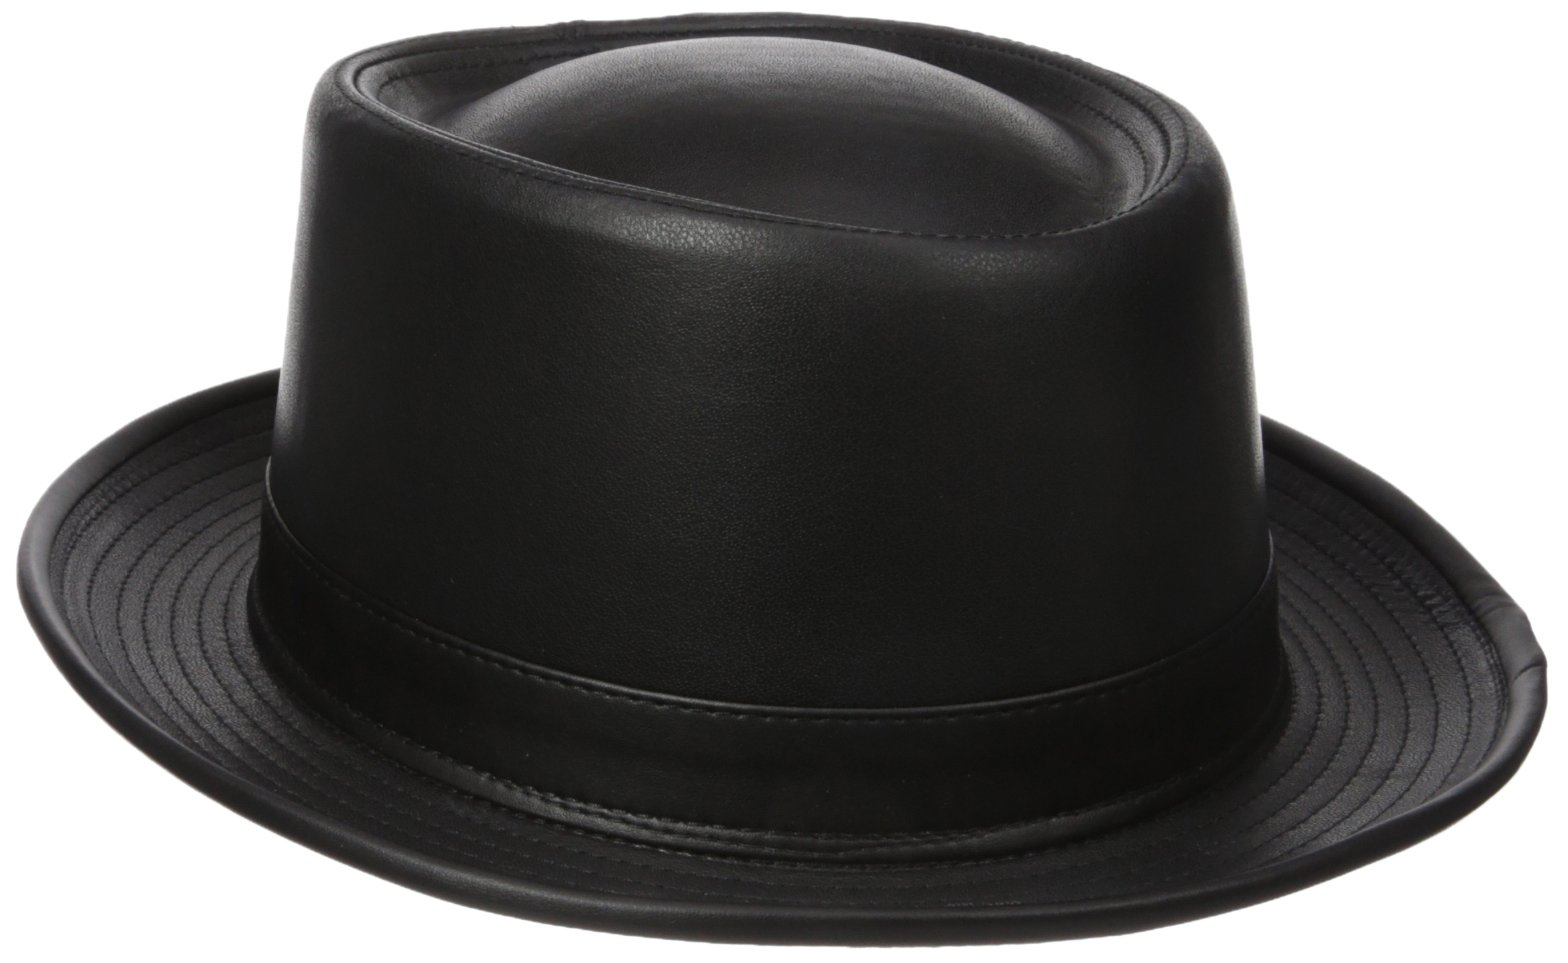 Henschel Men's Smooth Garment Leather Porkpie Hat With Satin Lining, Black, Large by Henschel